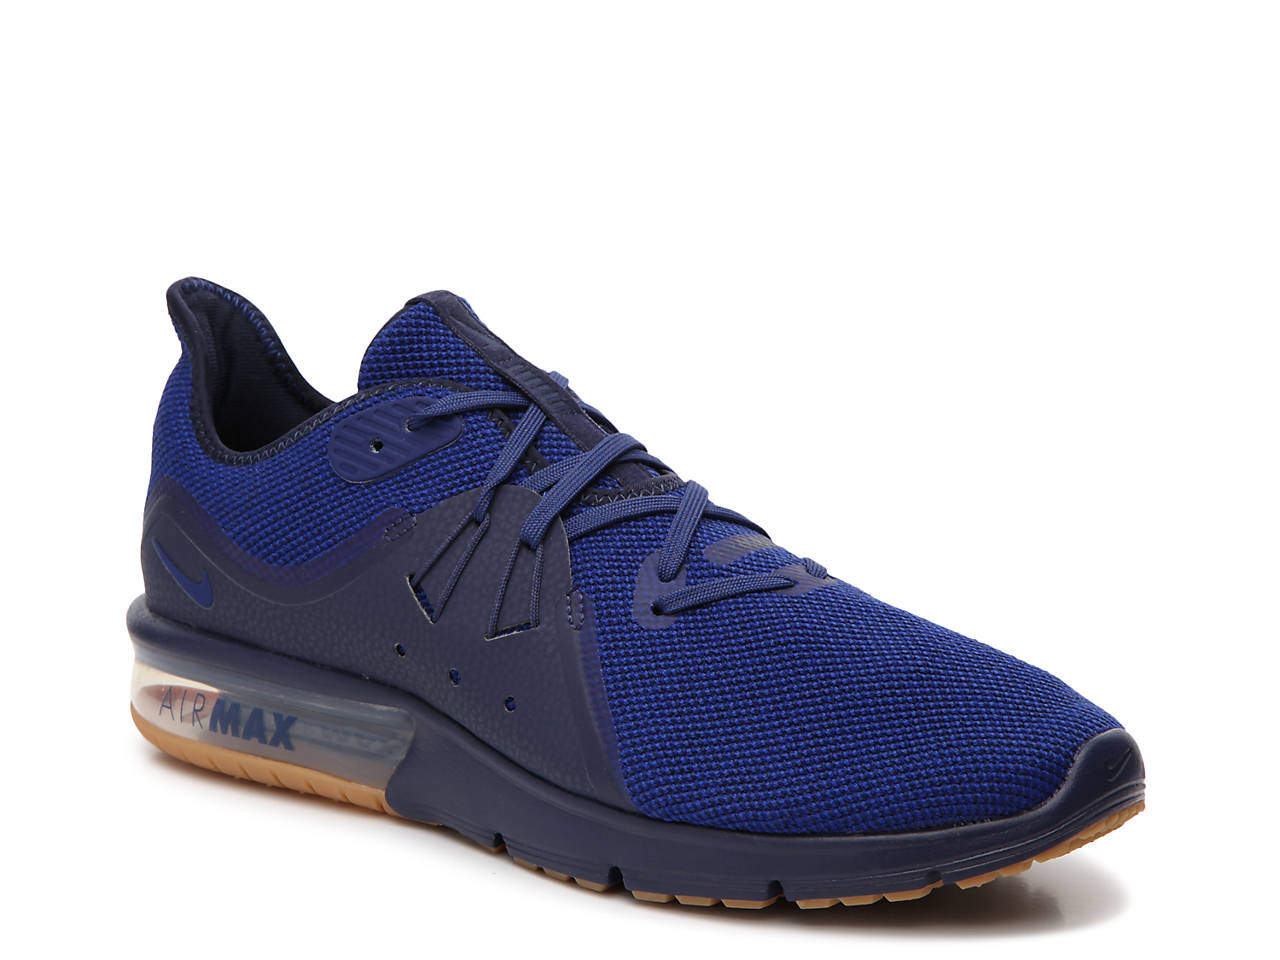 76e0d57ecb Nike Air Max Sequent 3 Performance Running Shoe - Men's Men's Shoes ...